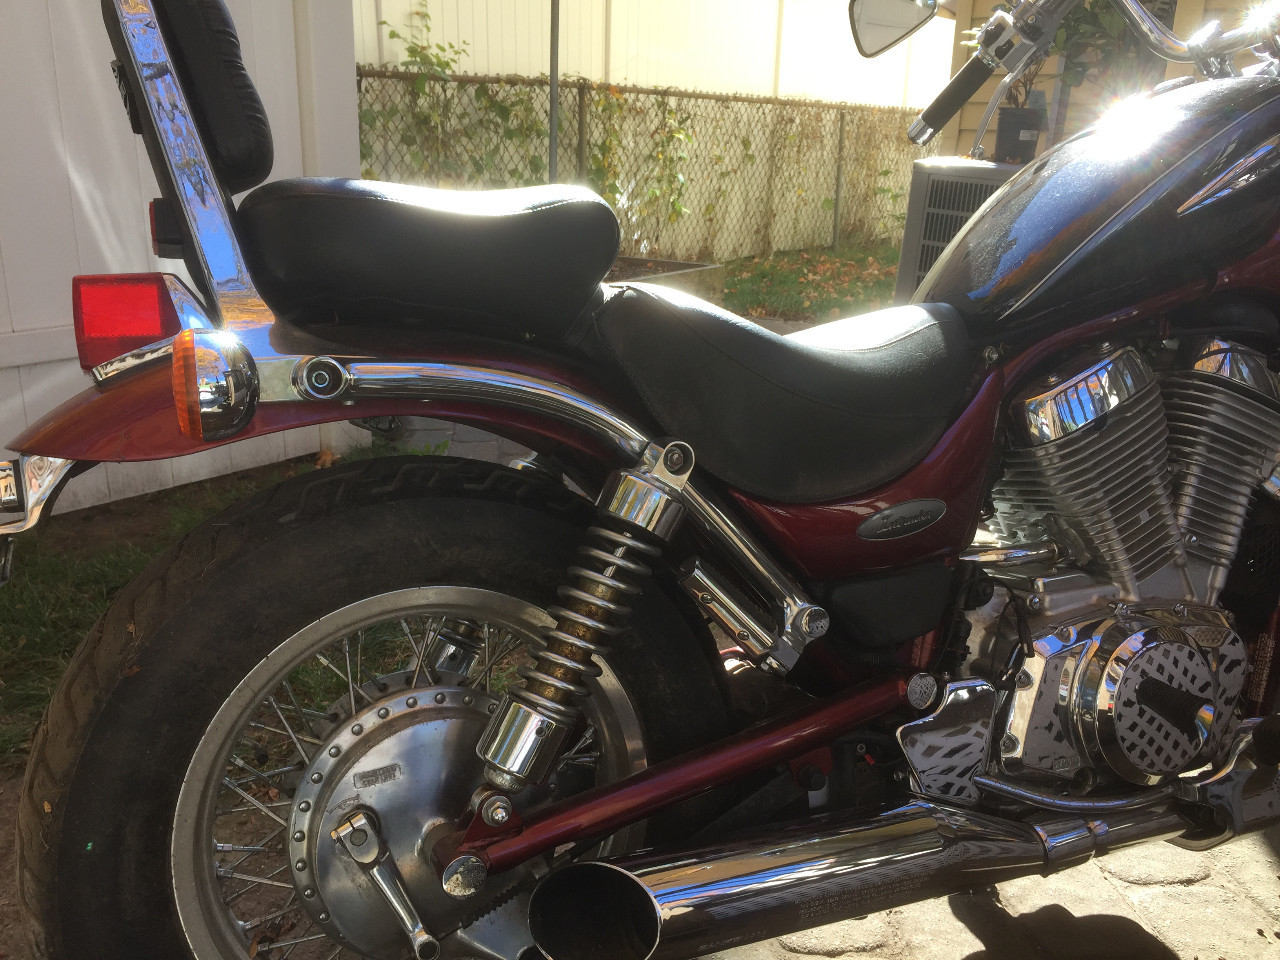 Classic / Vintage Motorcycles For Sale - CycleTrader.com